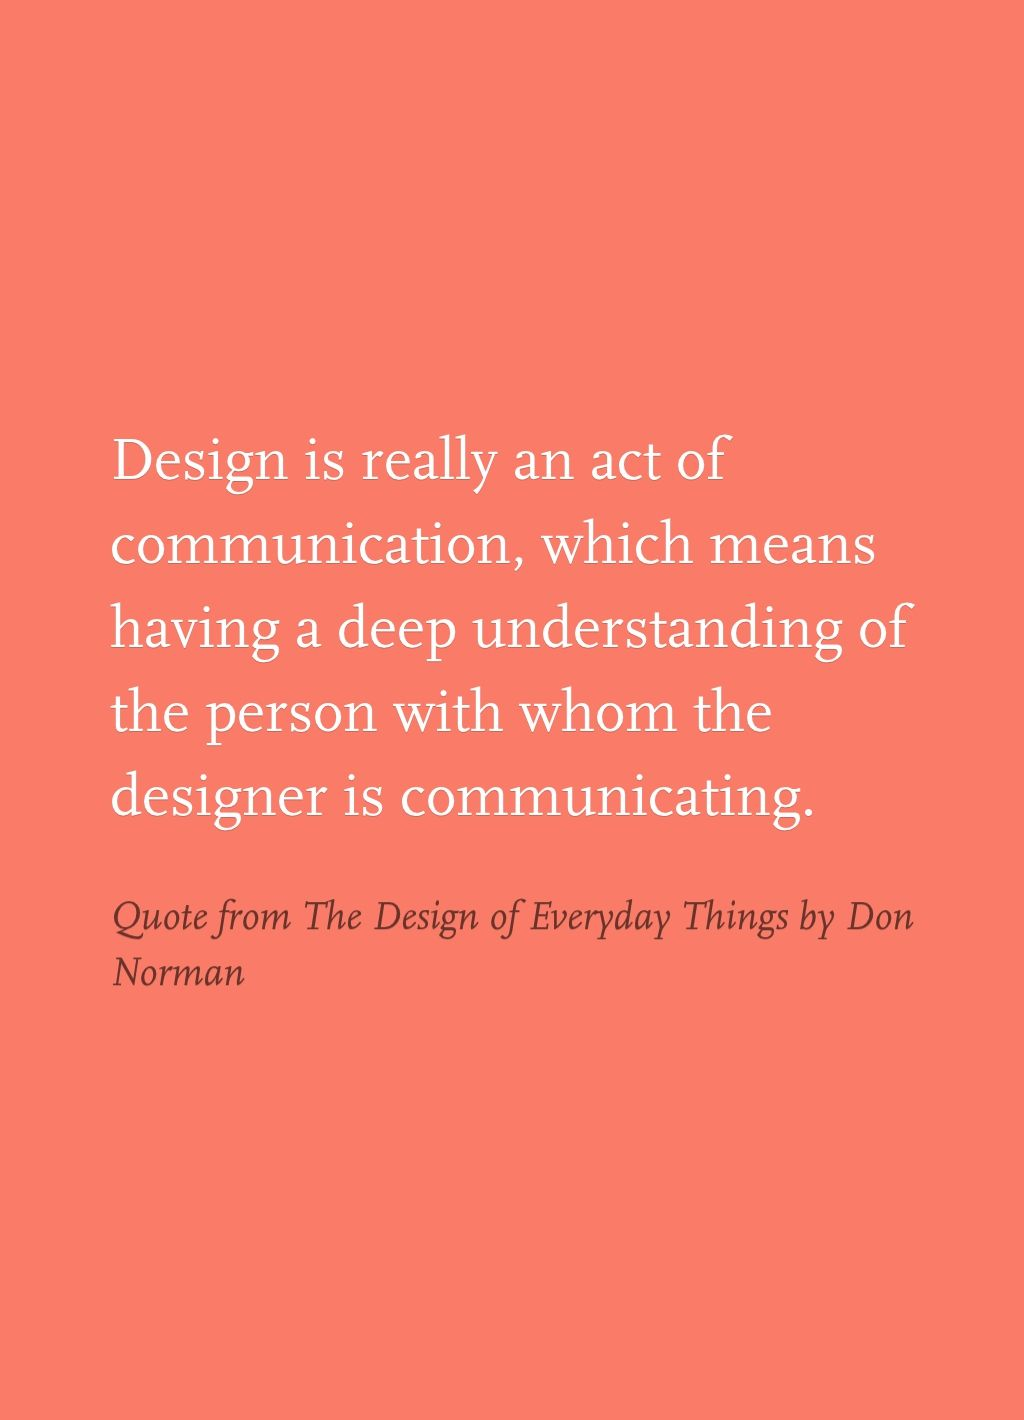 quote from the design of everyday things by don norman stumbling